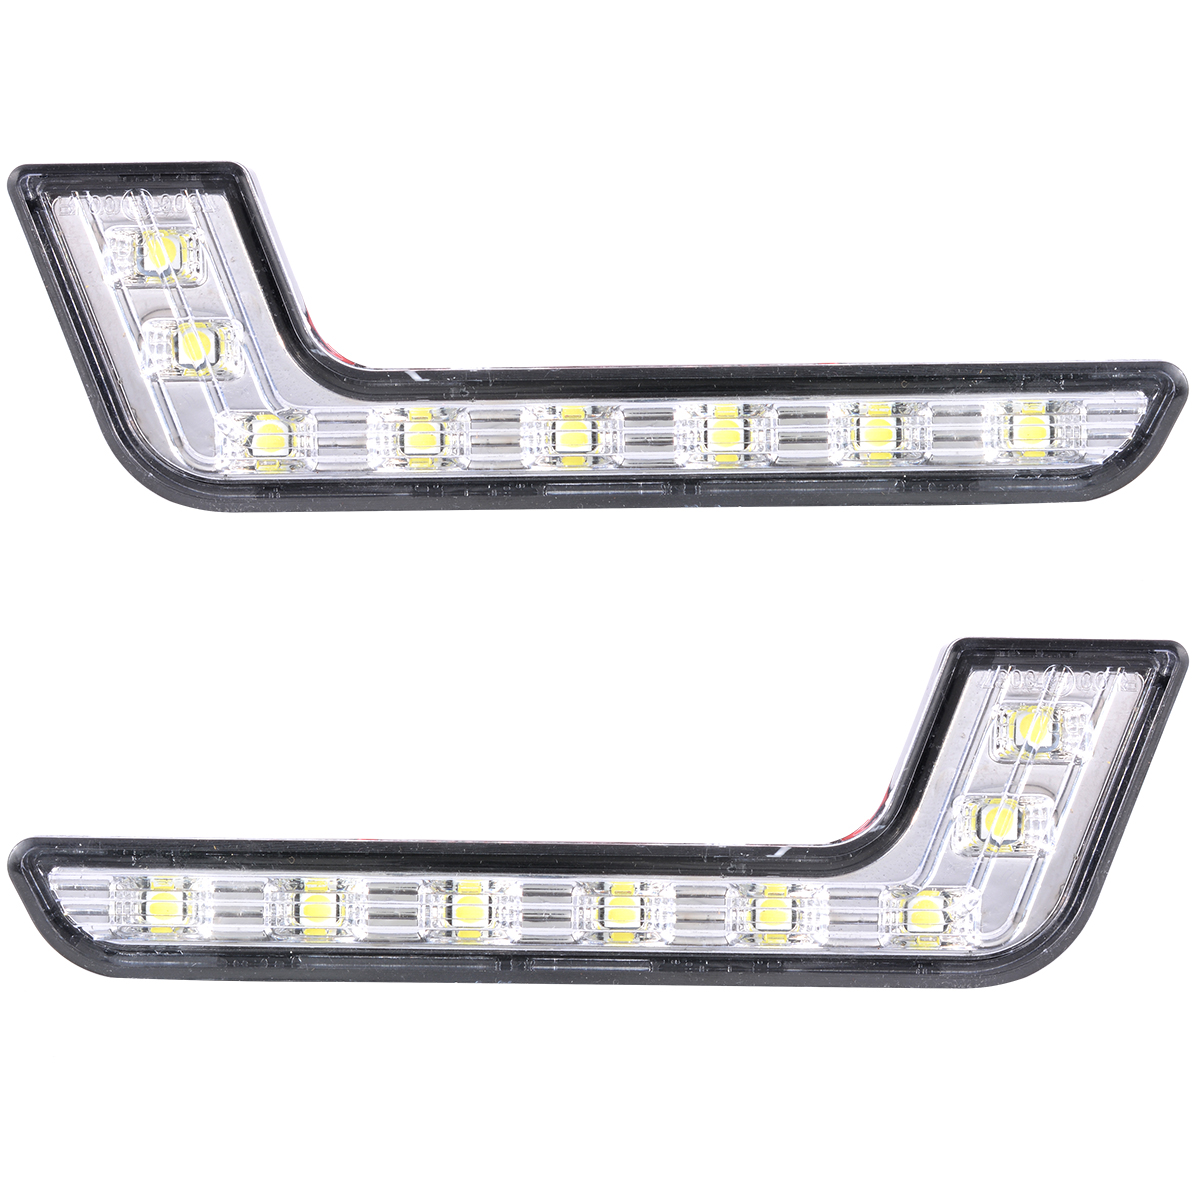 2x K Car Daytime Running Drl Bright Driving Day Light Head Lamp 8 Led White